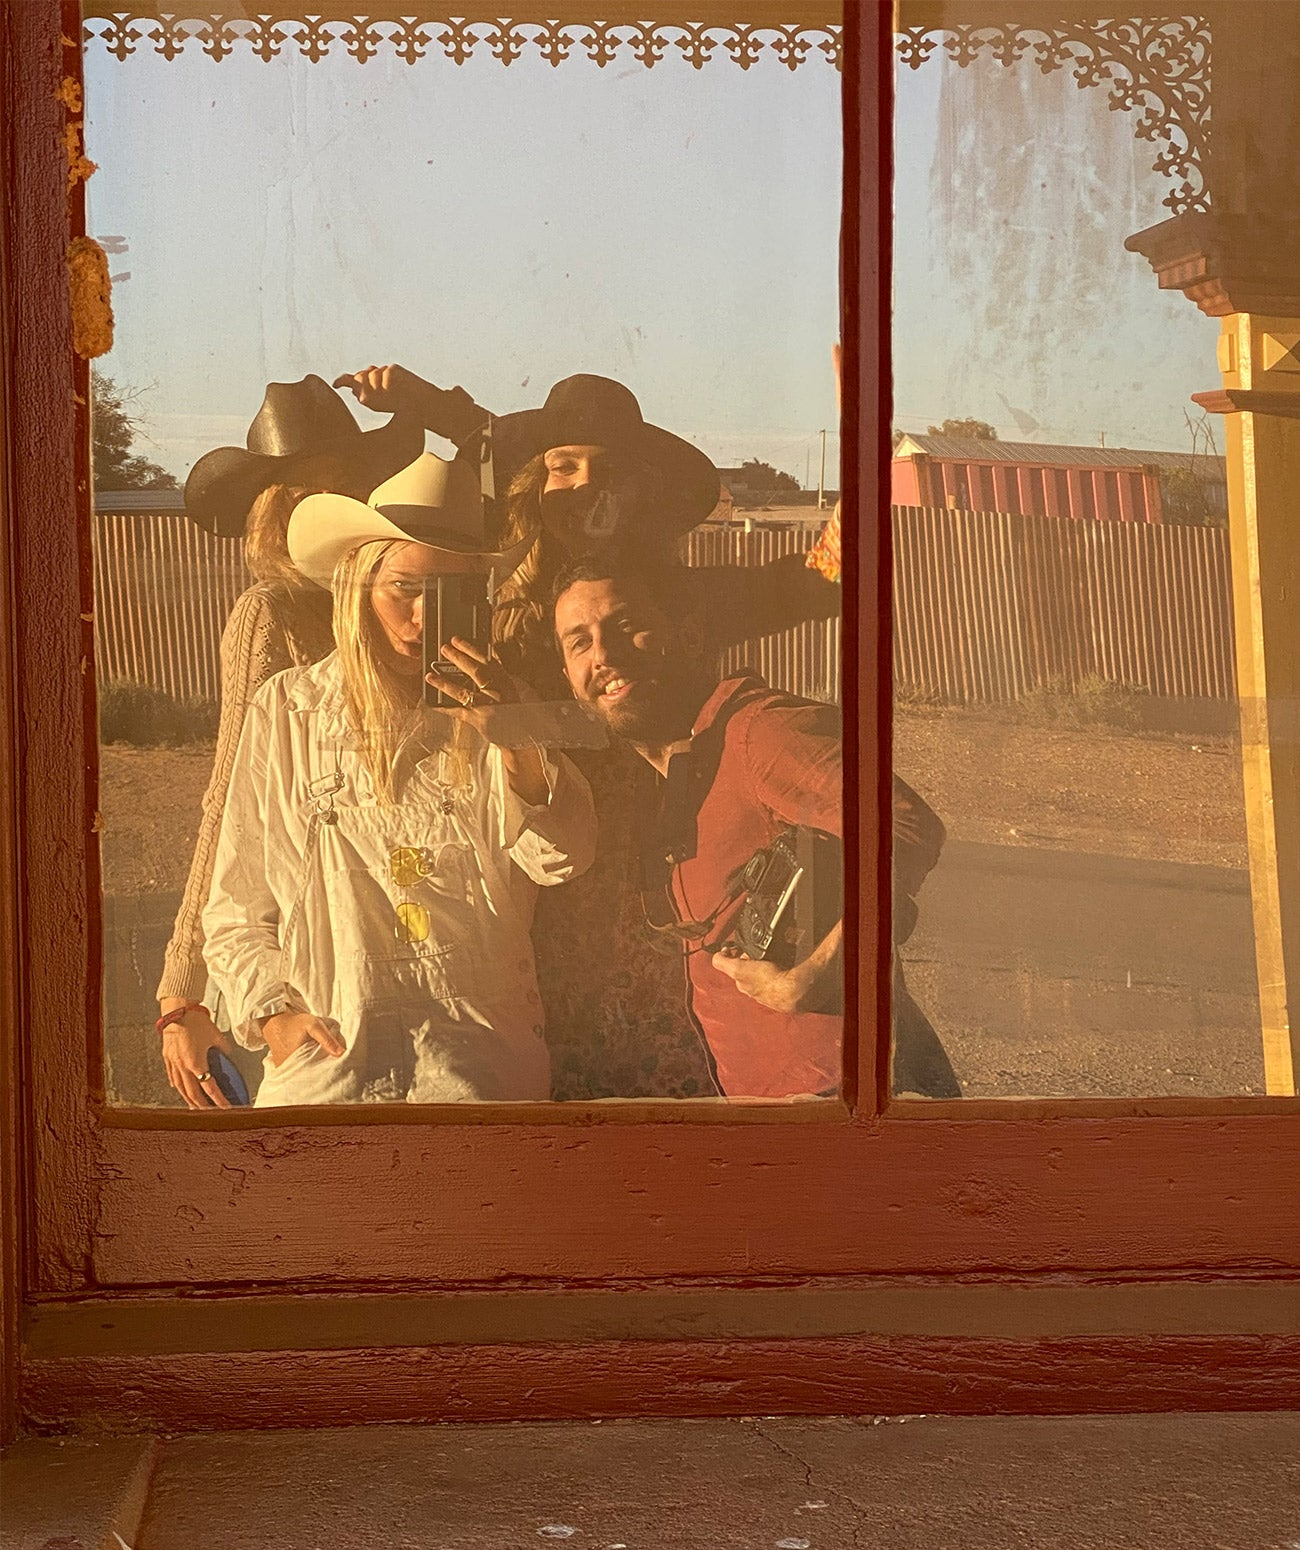 The Arnhem team on location for Nomada shot in the Australian outback of NSW including Silverton and Mungo national Park